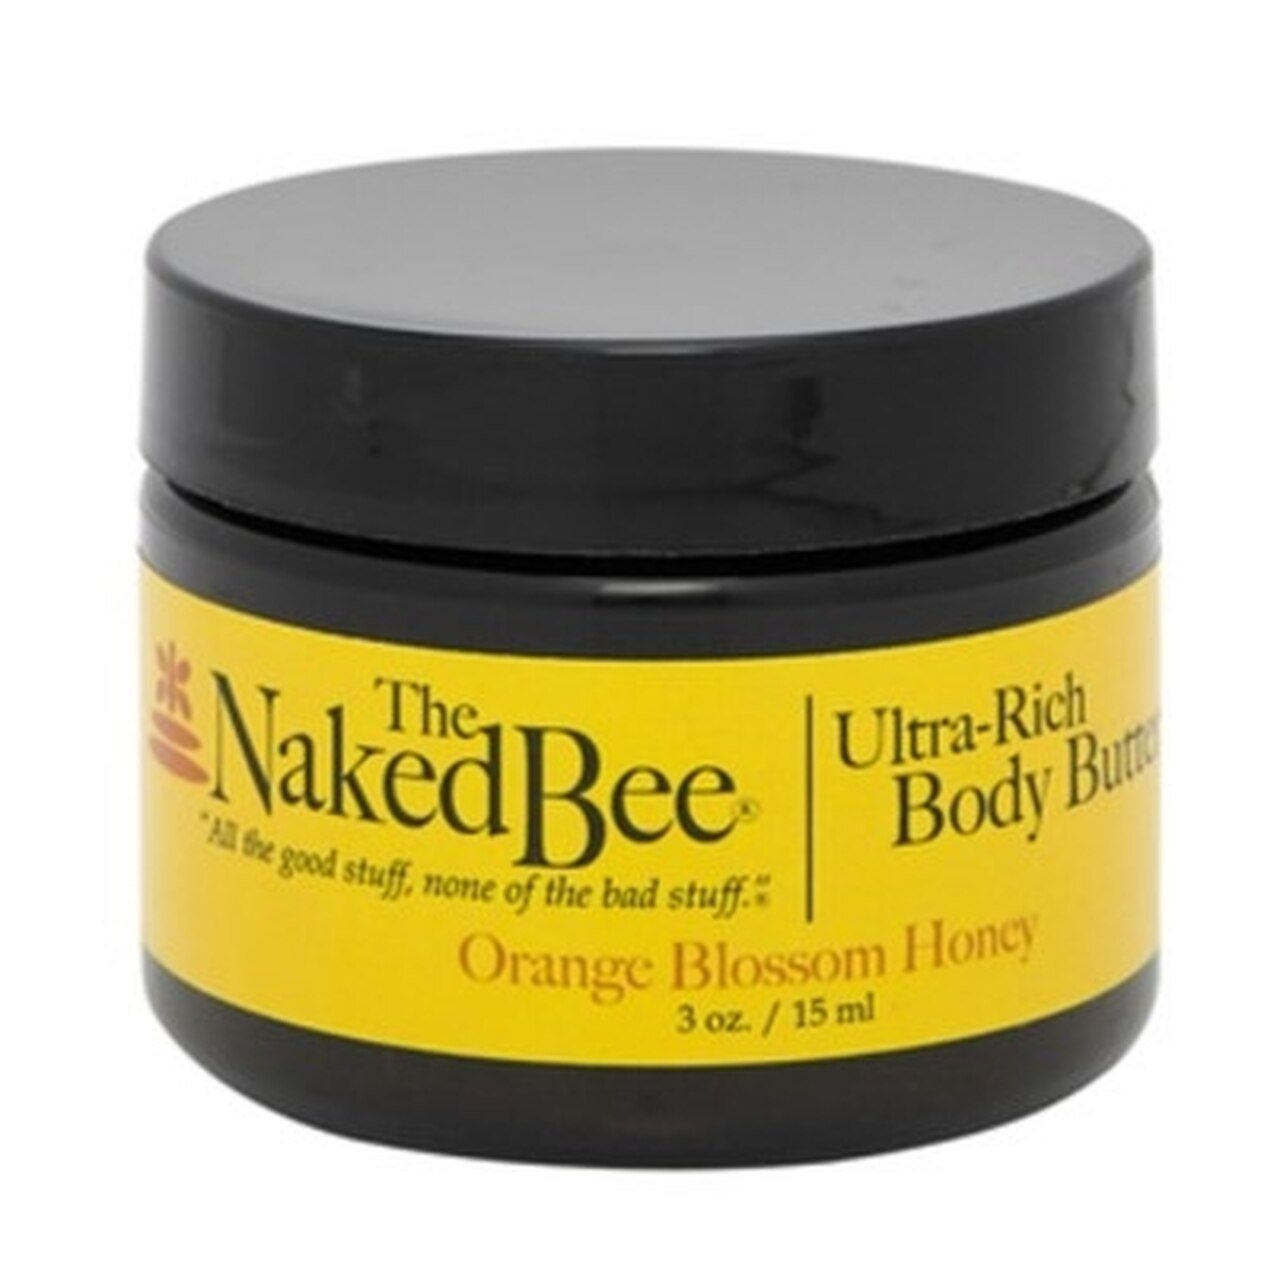 Naked Bee Ultra-Rich Body Butter (15ml) - Orange Blossom Honey